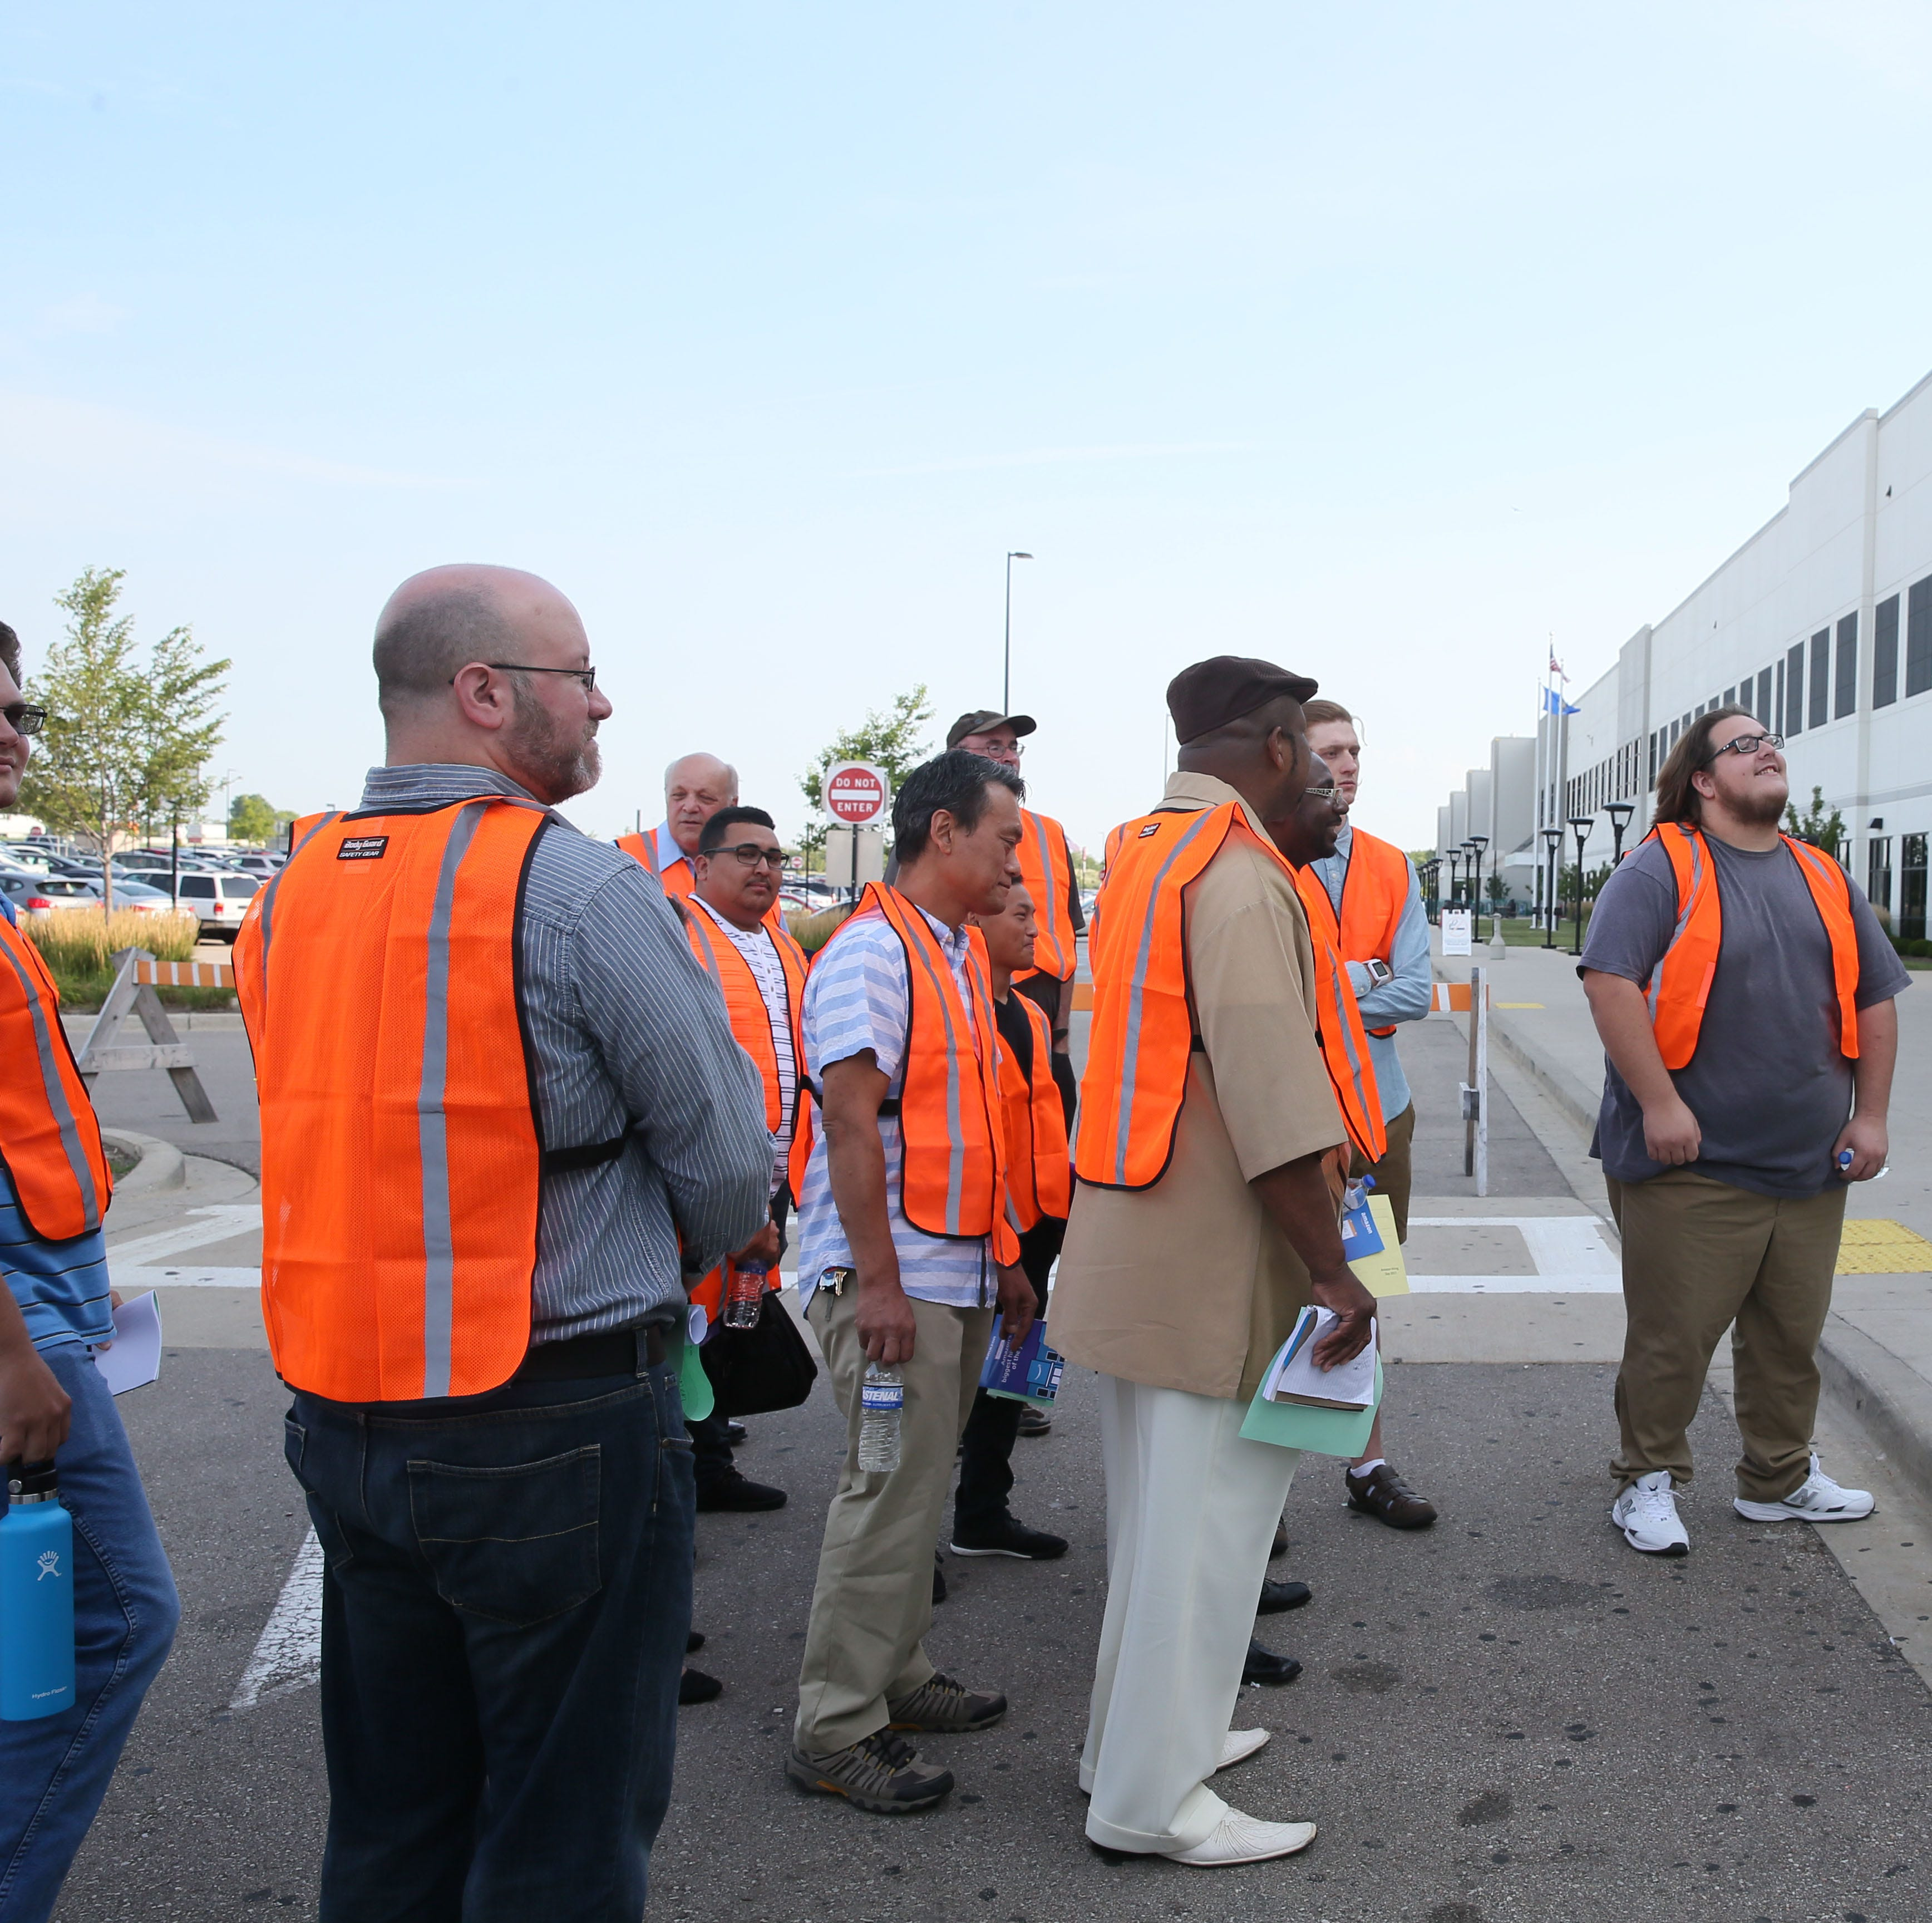 Amazon trainer Mike Fina (right) prepares to lead a group of job applicants through the company's Kenosha fulfillment center in this Aug. 2, 2017, photo.